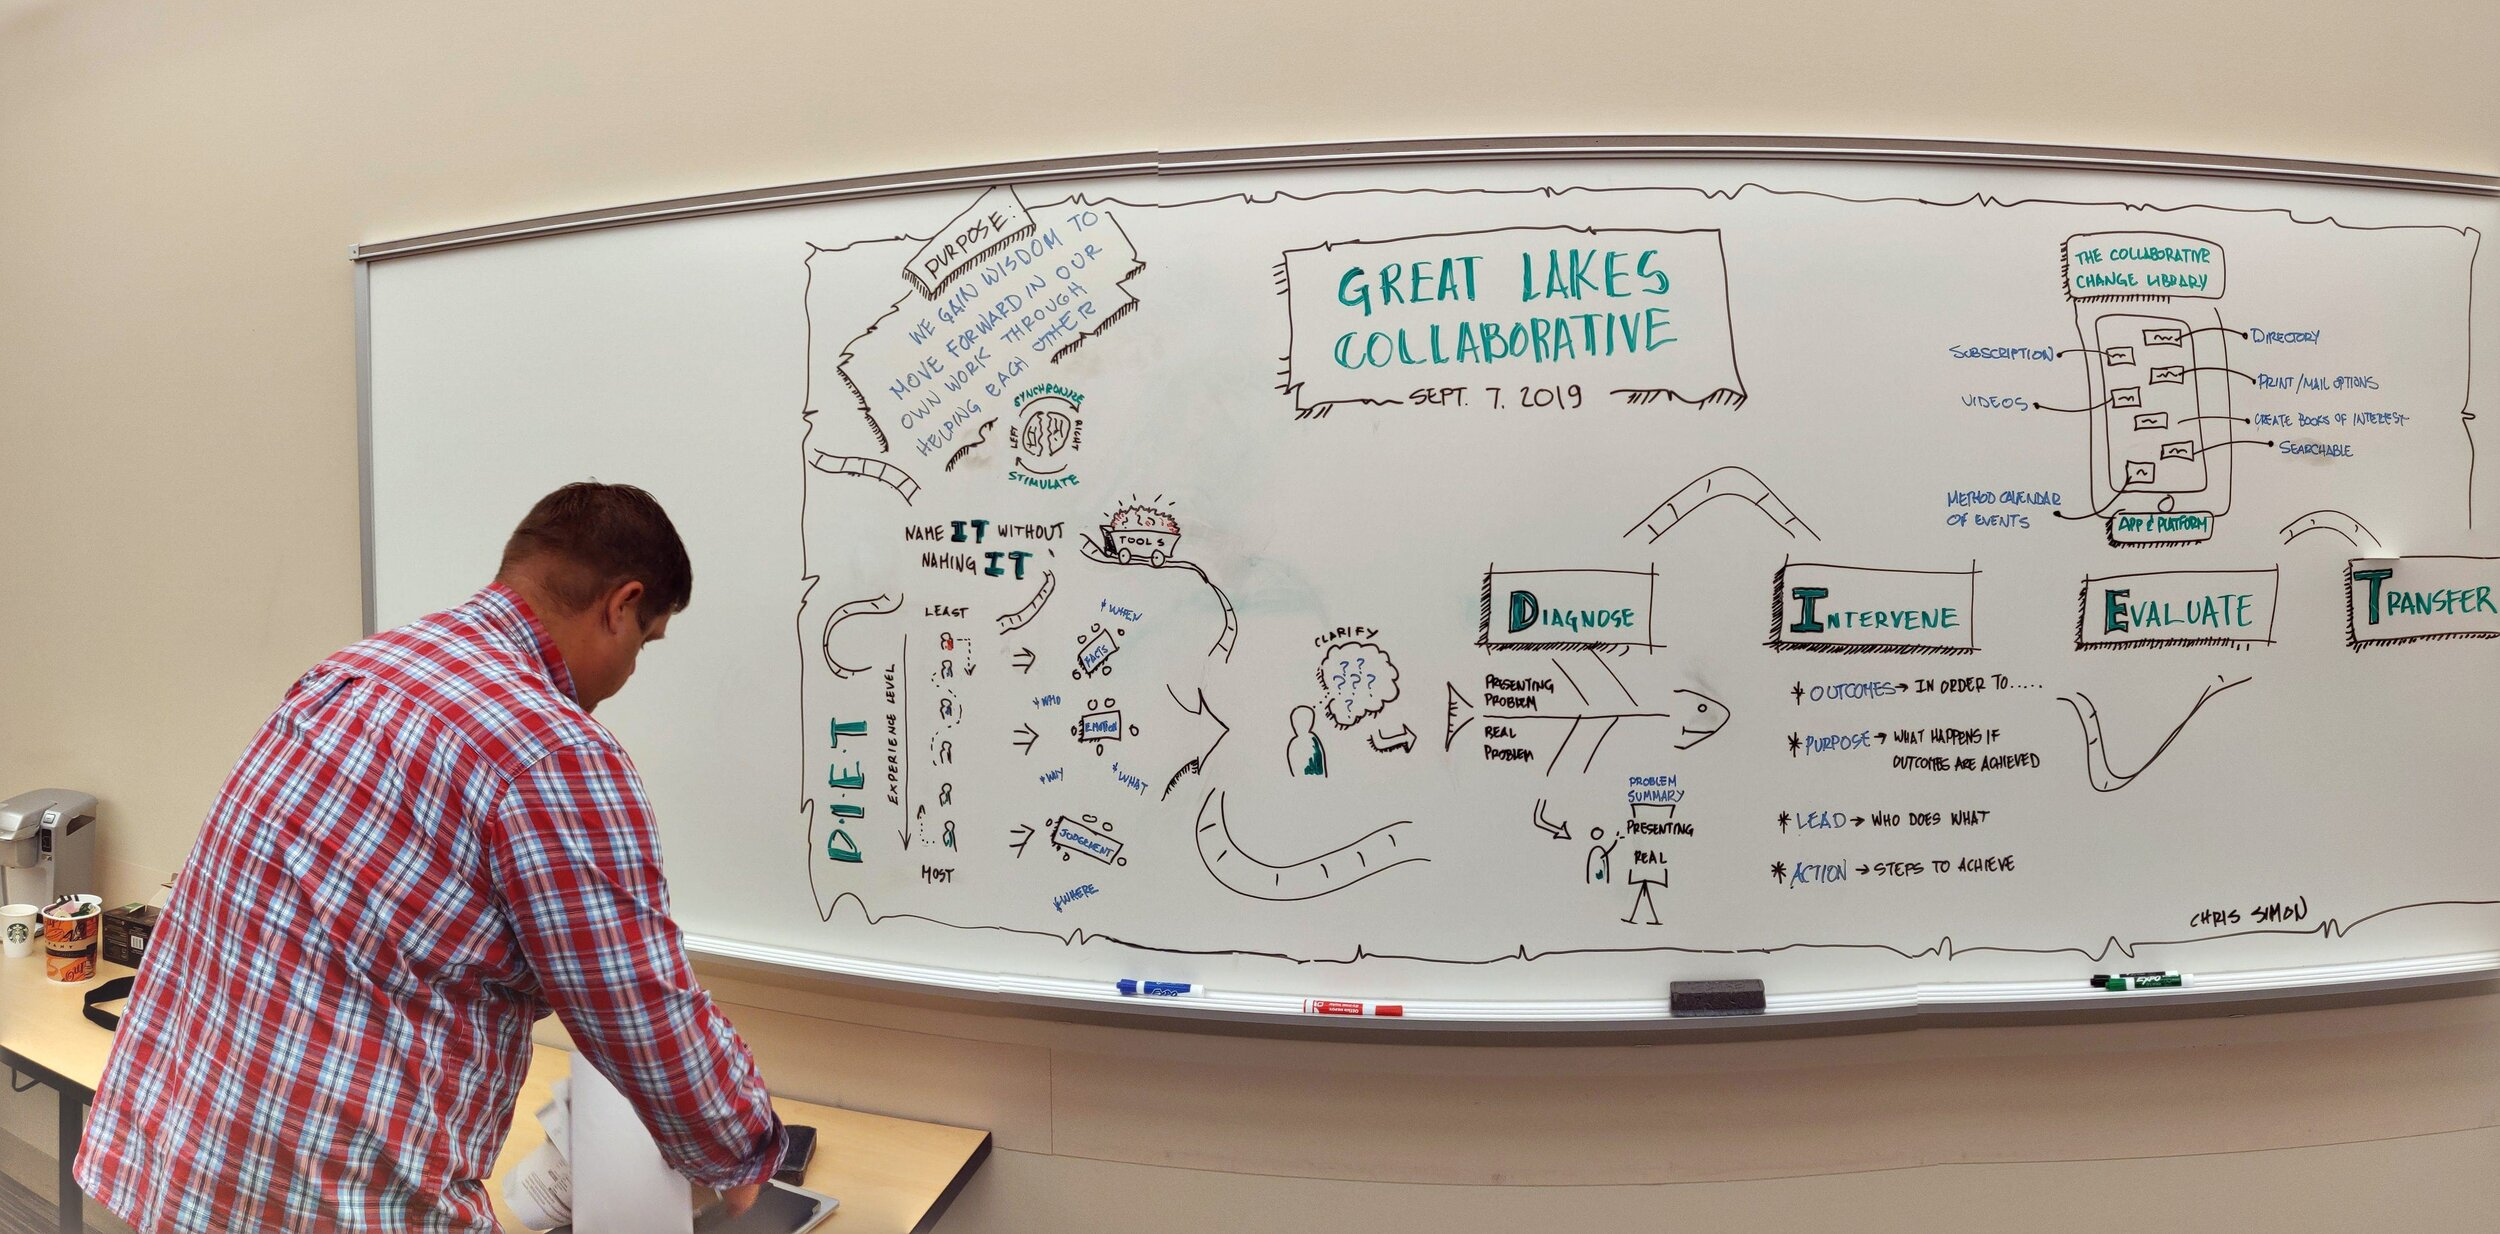 Thanks Chris Simon for the Graphic Recording of our day!